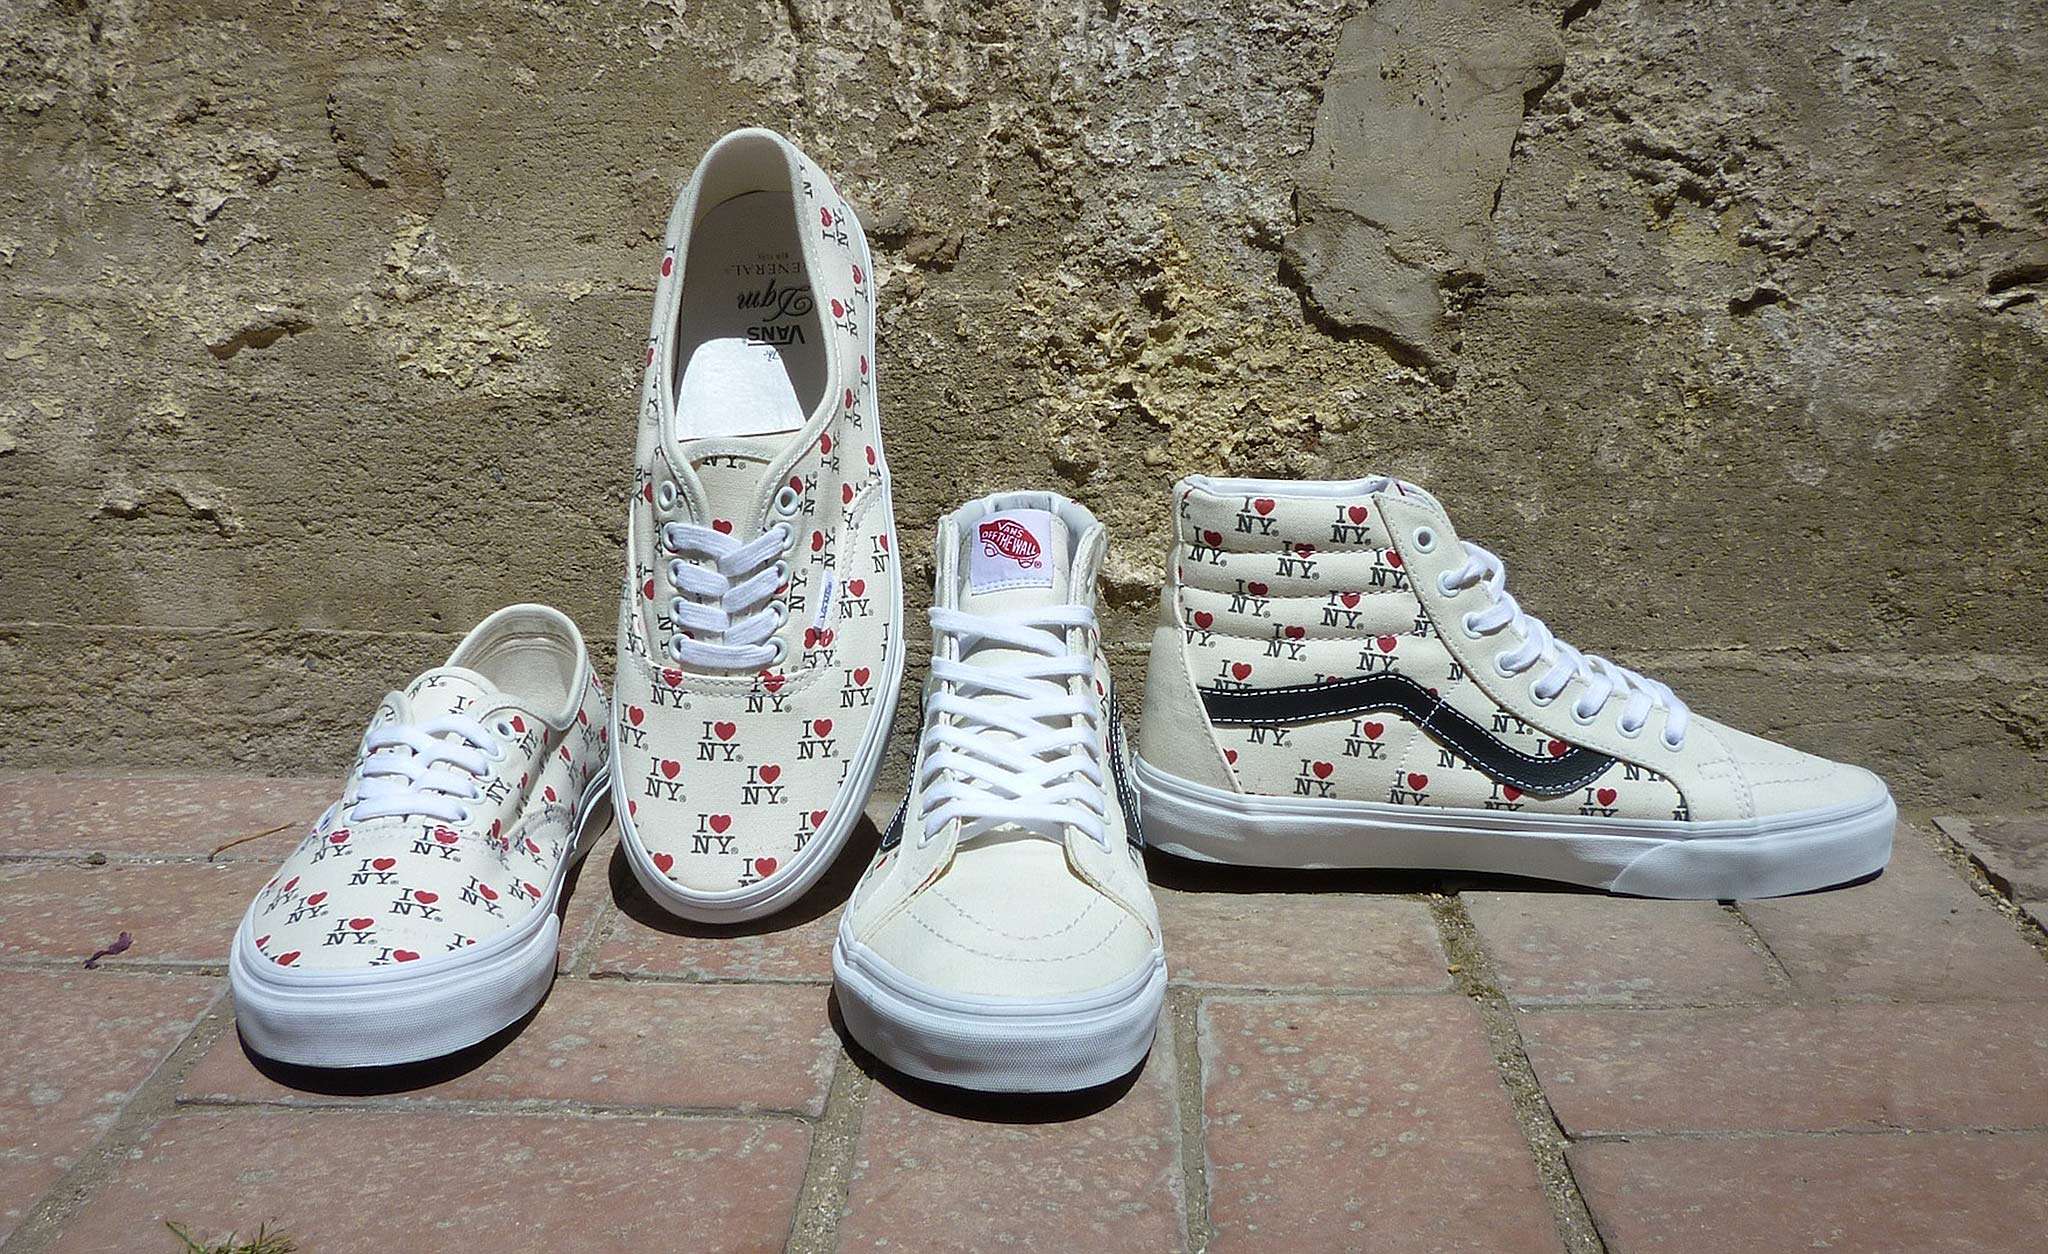 Vans and DQM have released Milton Glaser's iconic I Love NY design on their shoes.